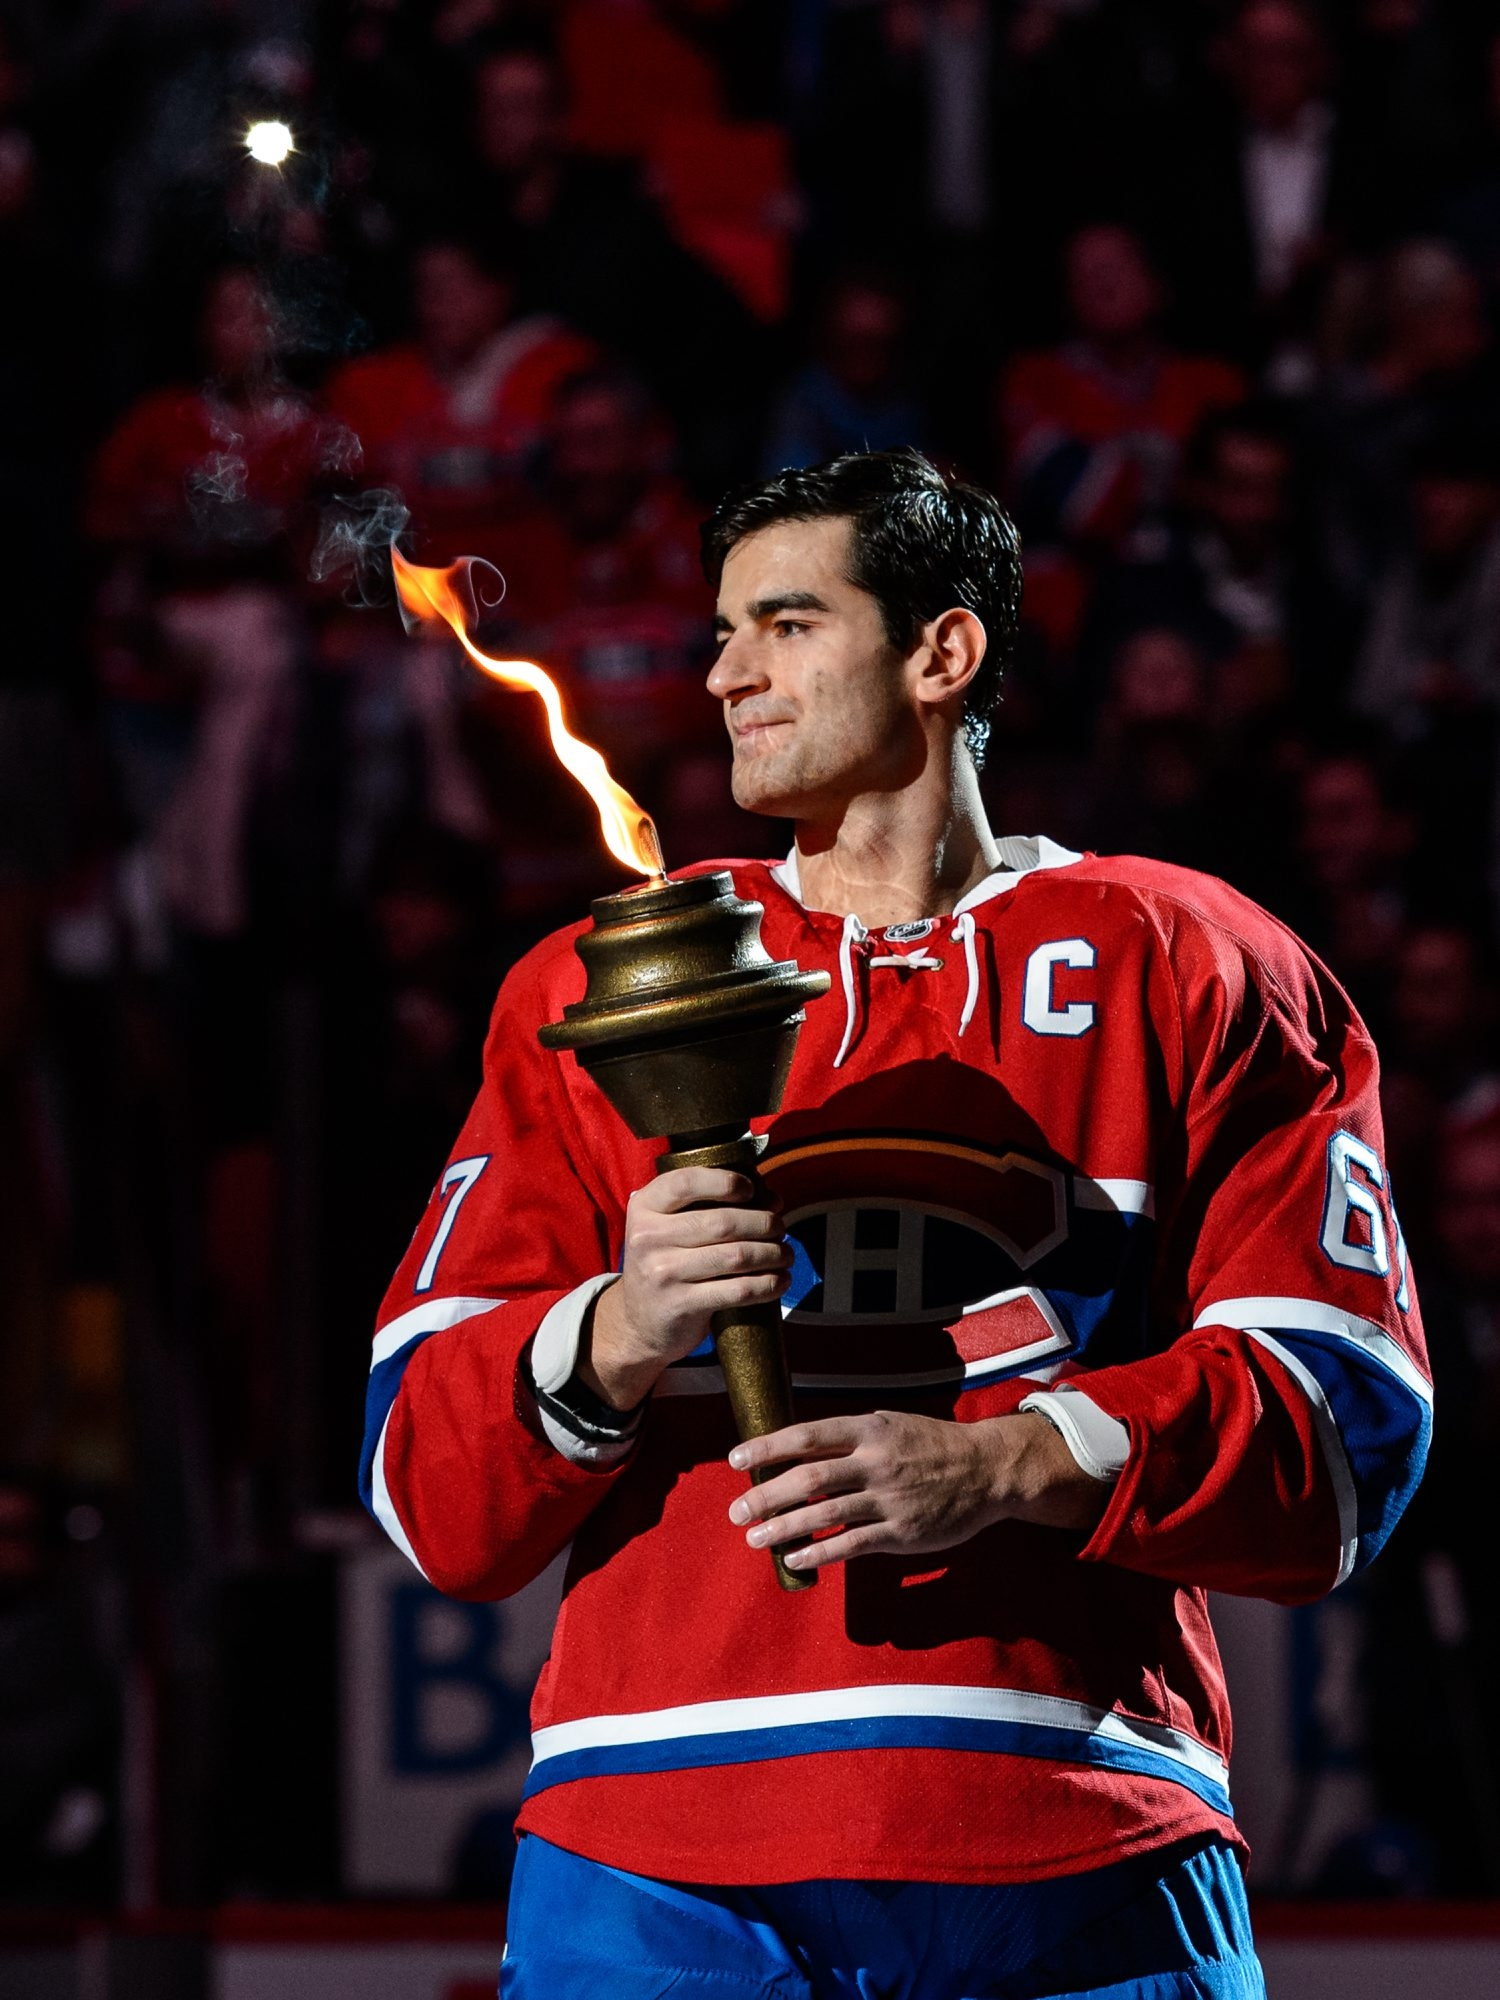 Max Pacioretty accepts the torch symbolic of being named captain of the Montreal Canadiens. He's the third American-born player so honored.